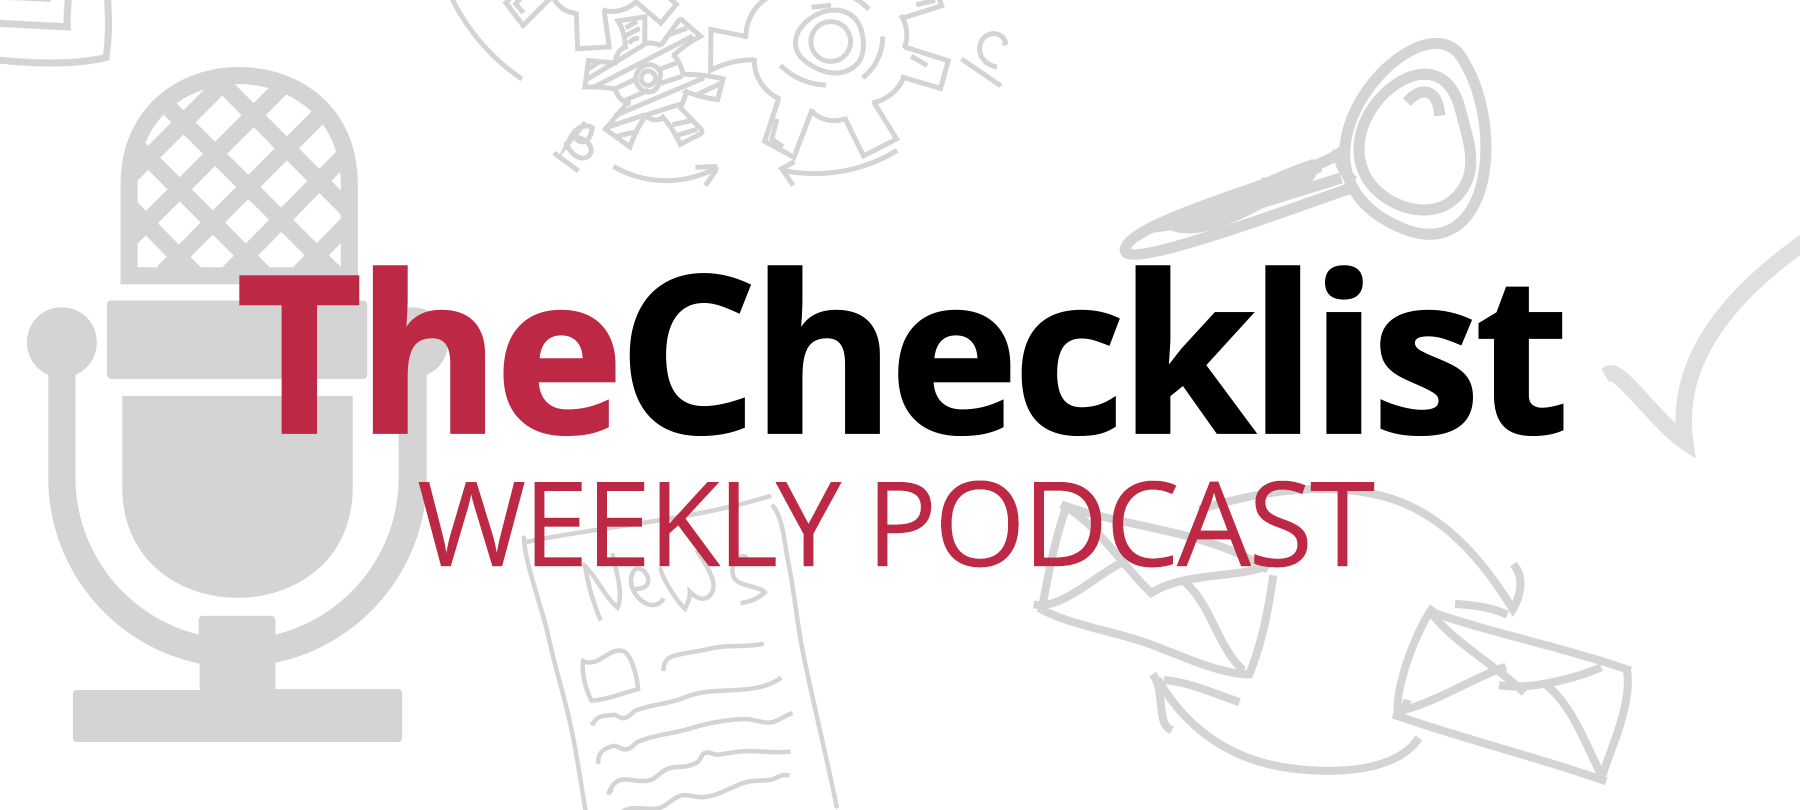 Episode: Checklist 41: Open Sesame: Authentication and Online Security